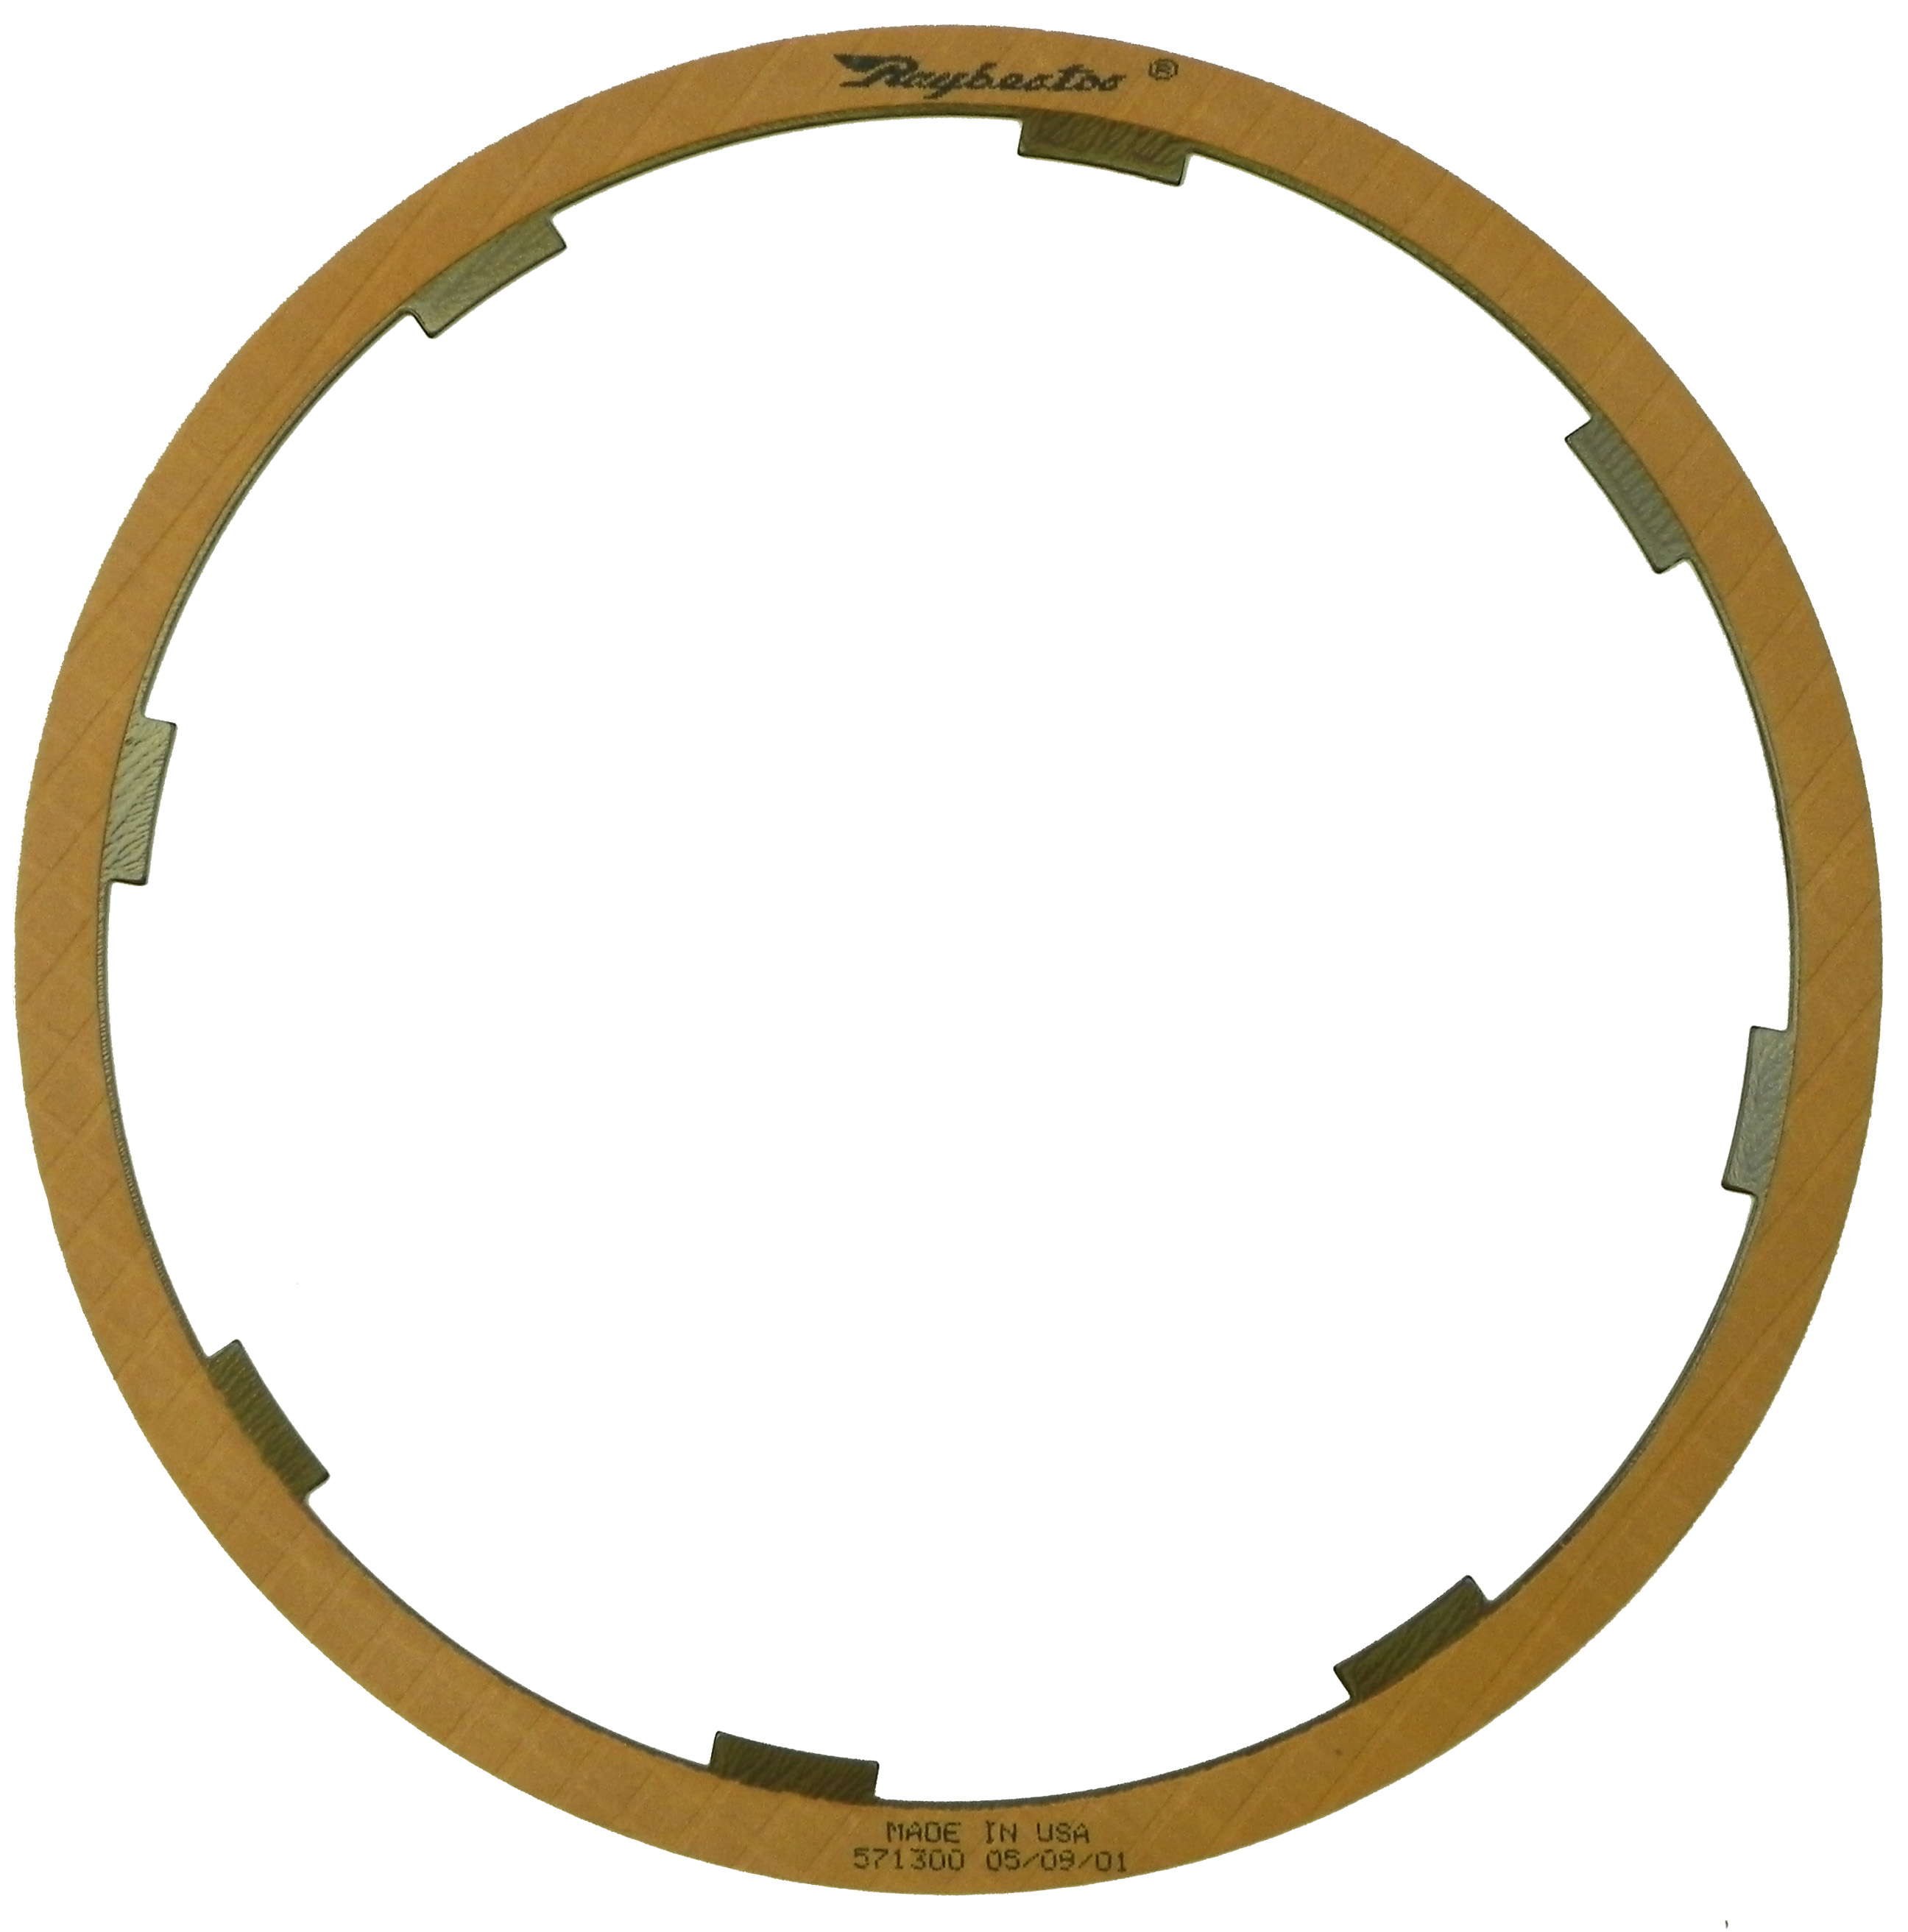 R571300 | 1981-1992 Friction Clutch Plate OE Replacement Low, Reverse